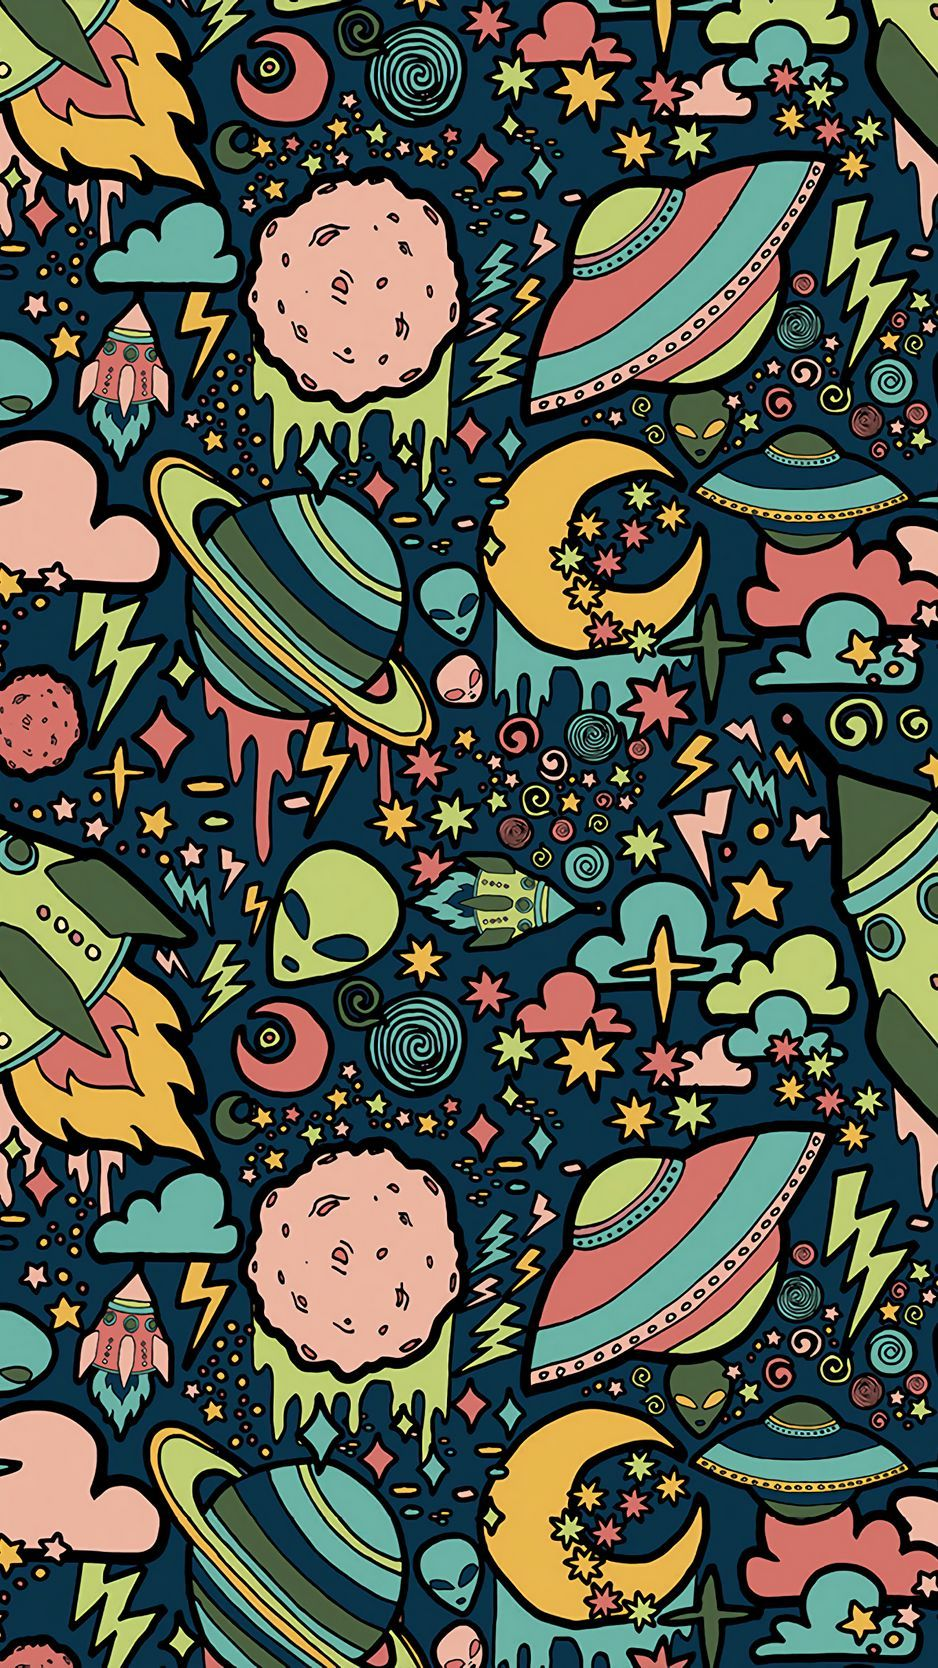 Download wallpaper 938x1668 texture, patterns, aliens, rockets, space iphone 8/7/6s/6 for parallax hd background